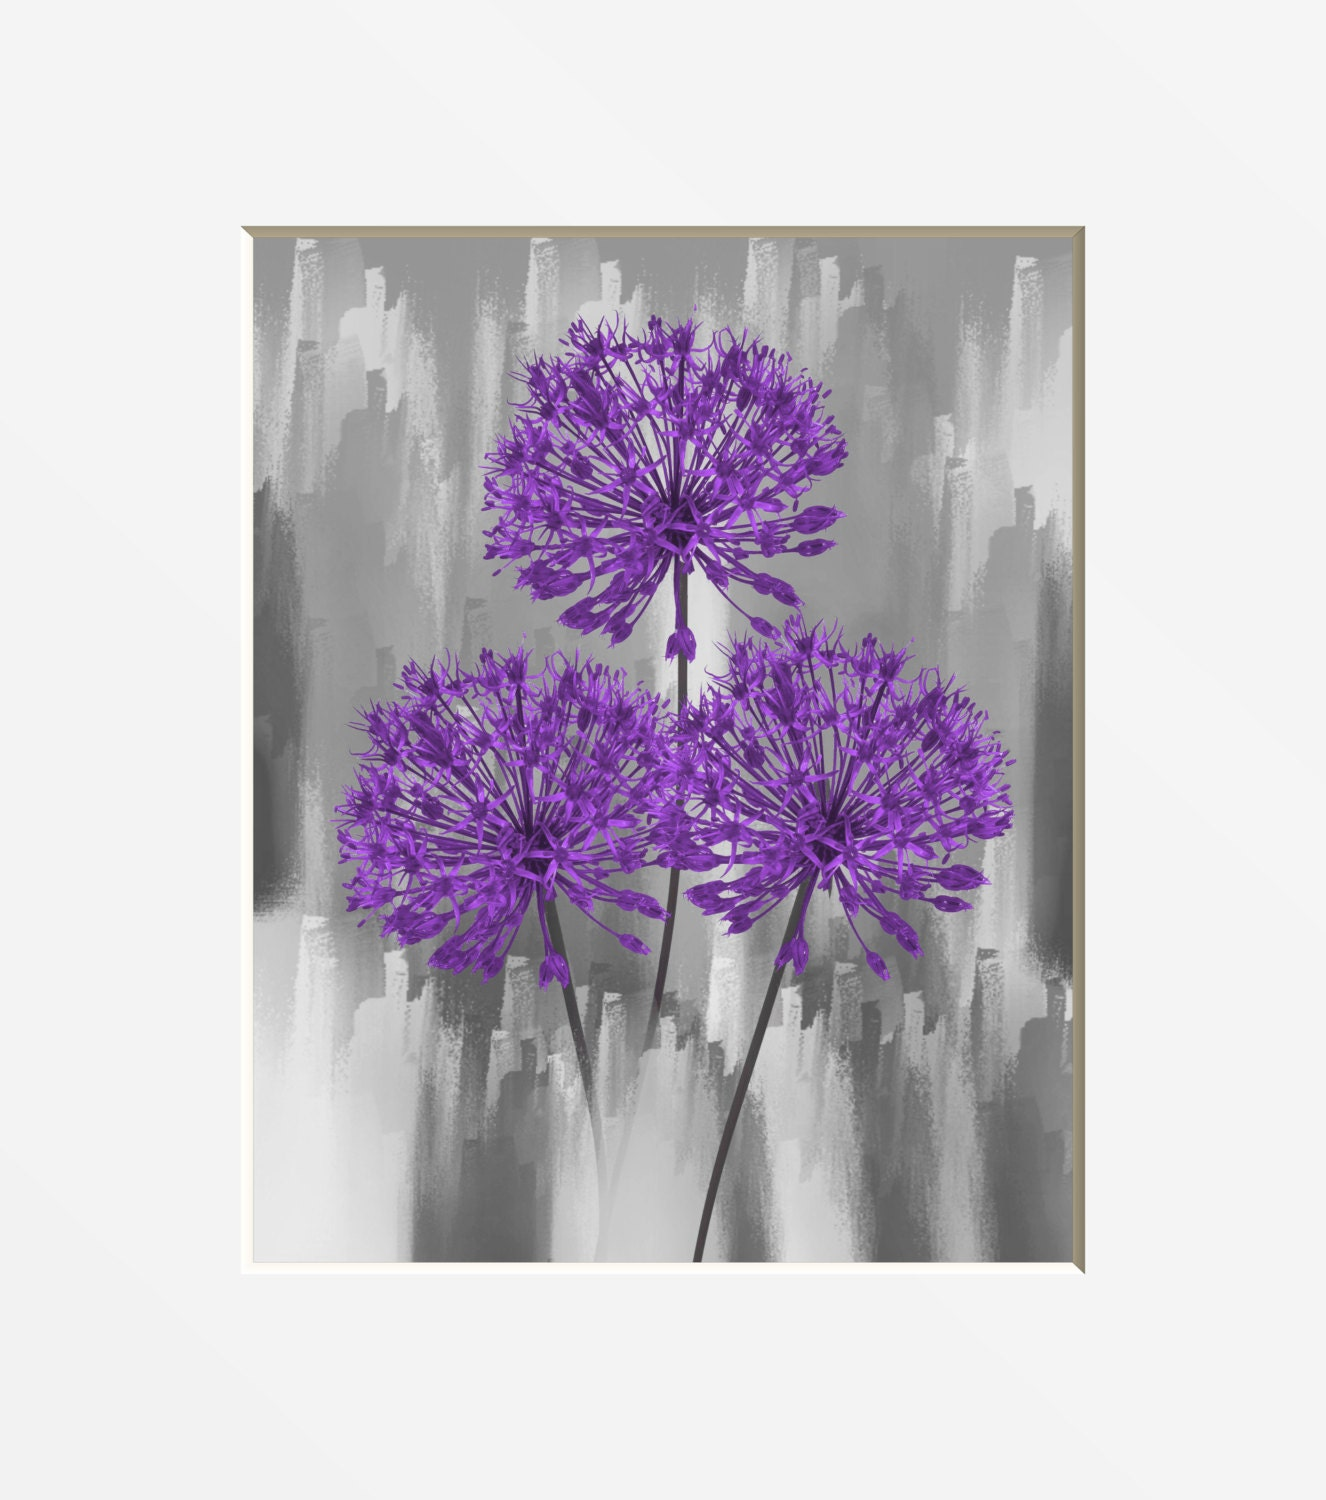 purple gray floral wall art purple home decor modern bedroom etsy. Black Bedroom Furniture Sets. Home Design Ideas